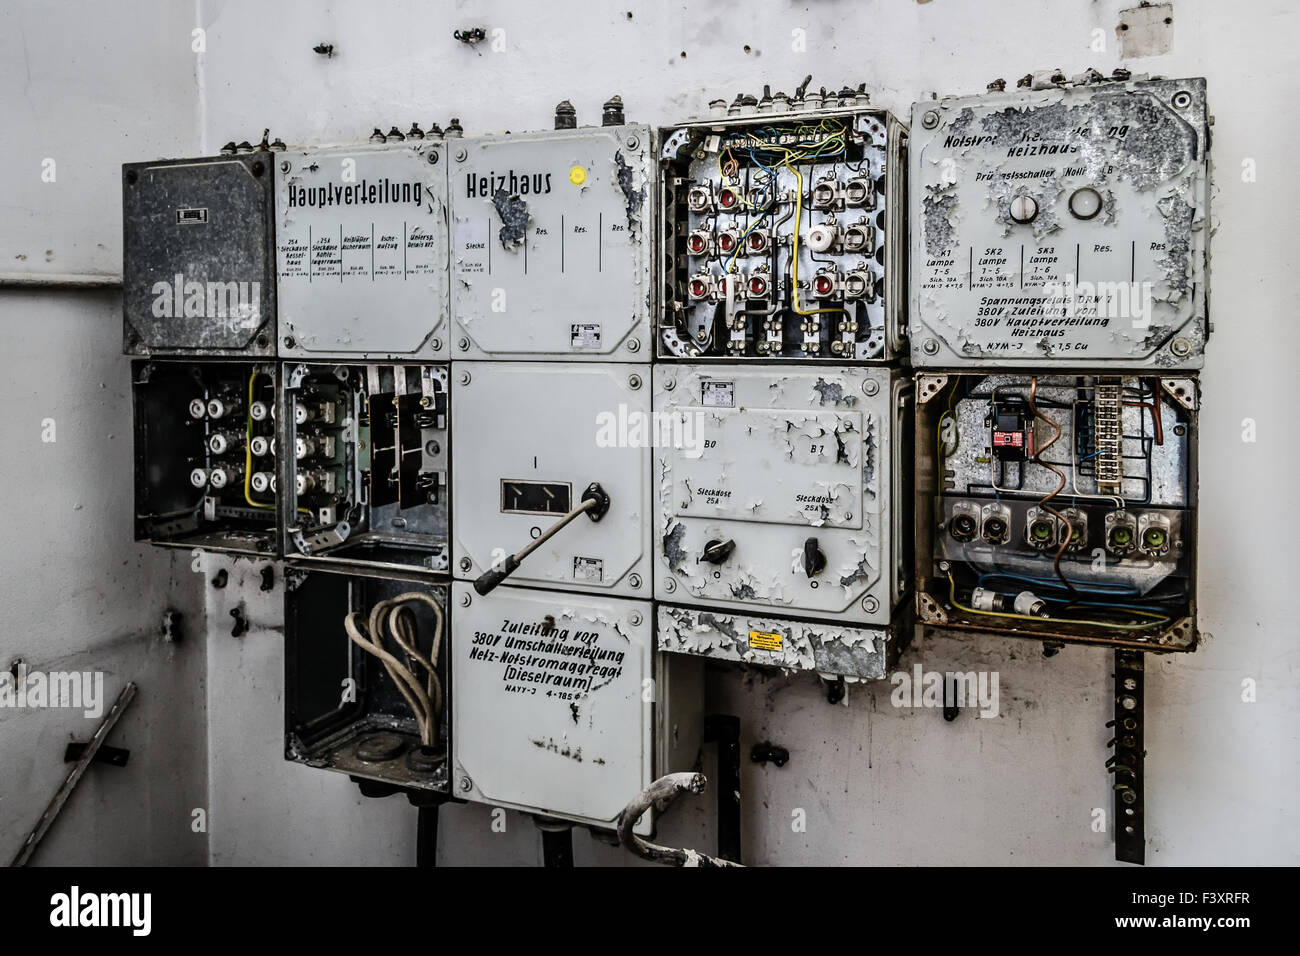 old fuse box F3XRFR old fuse box stock photo, royalty free image 88485035 alamy old fuse box diagram at virtualis.co